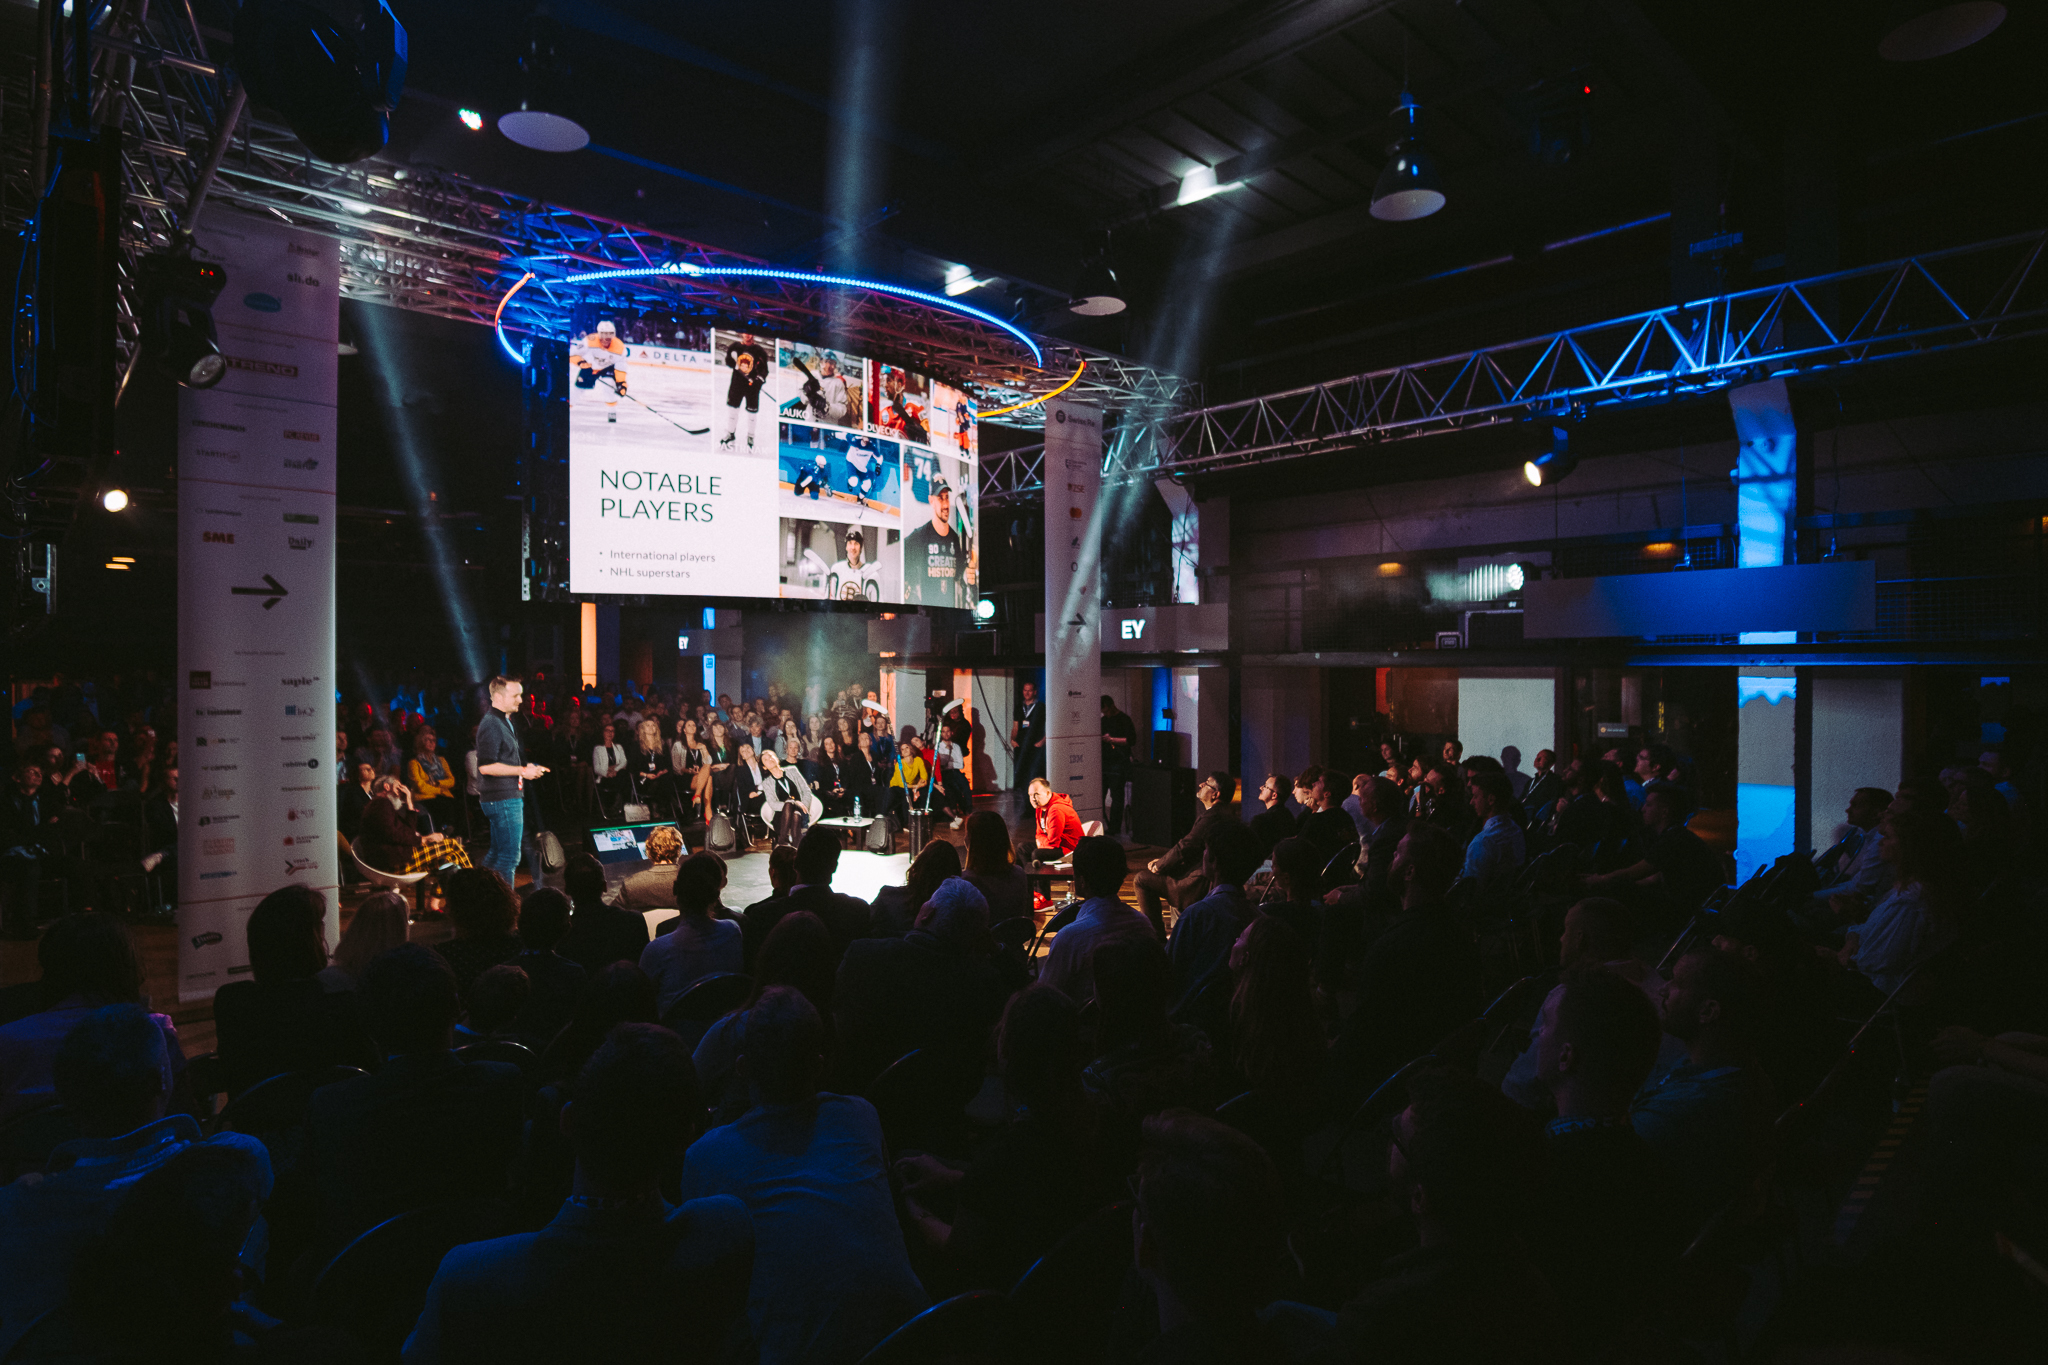 Spectre Hockey, the winner of the US Connections proze by Slovak-American Foundation for tSpectre Hockey, the winner of the US Connections prize by Slovak-American Foundation for the best Slovak startuphe best Slovak startup